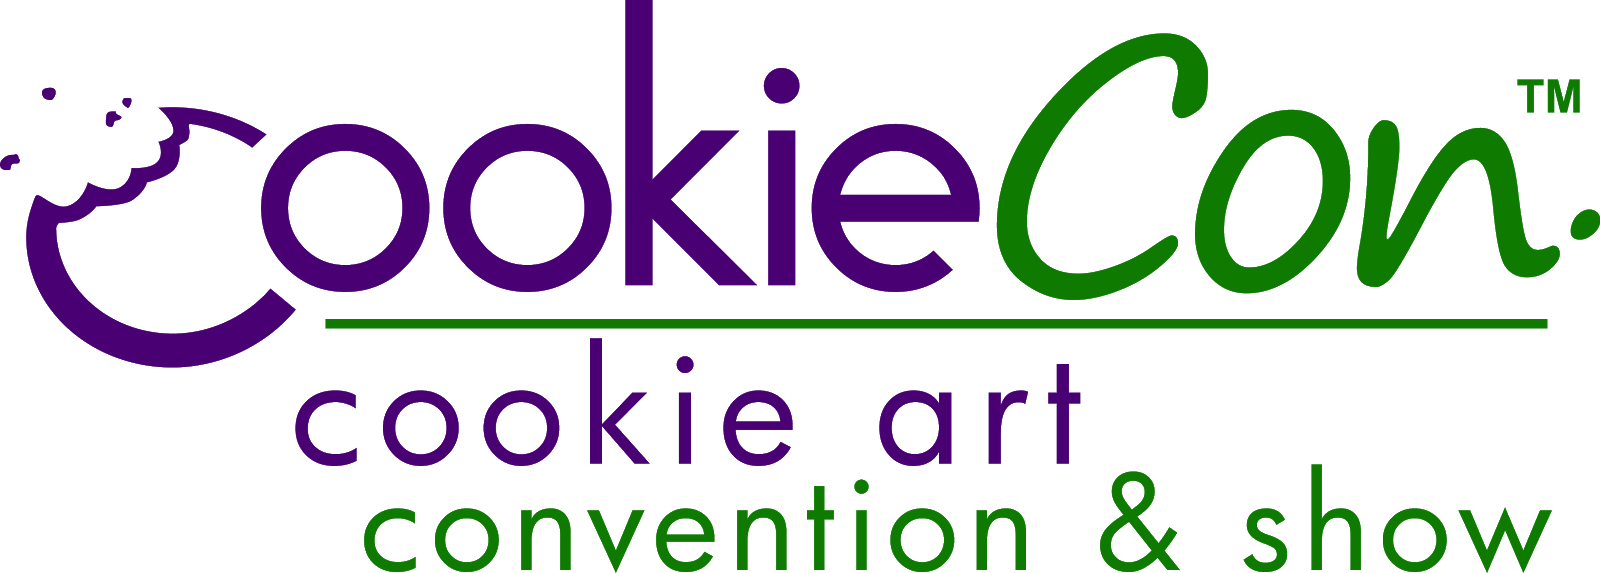 CookieCon Sponsor 2018-2019